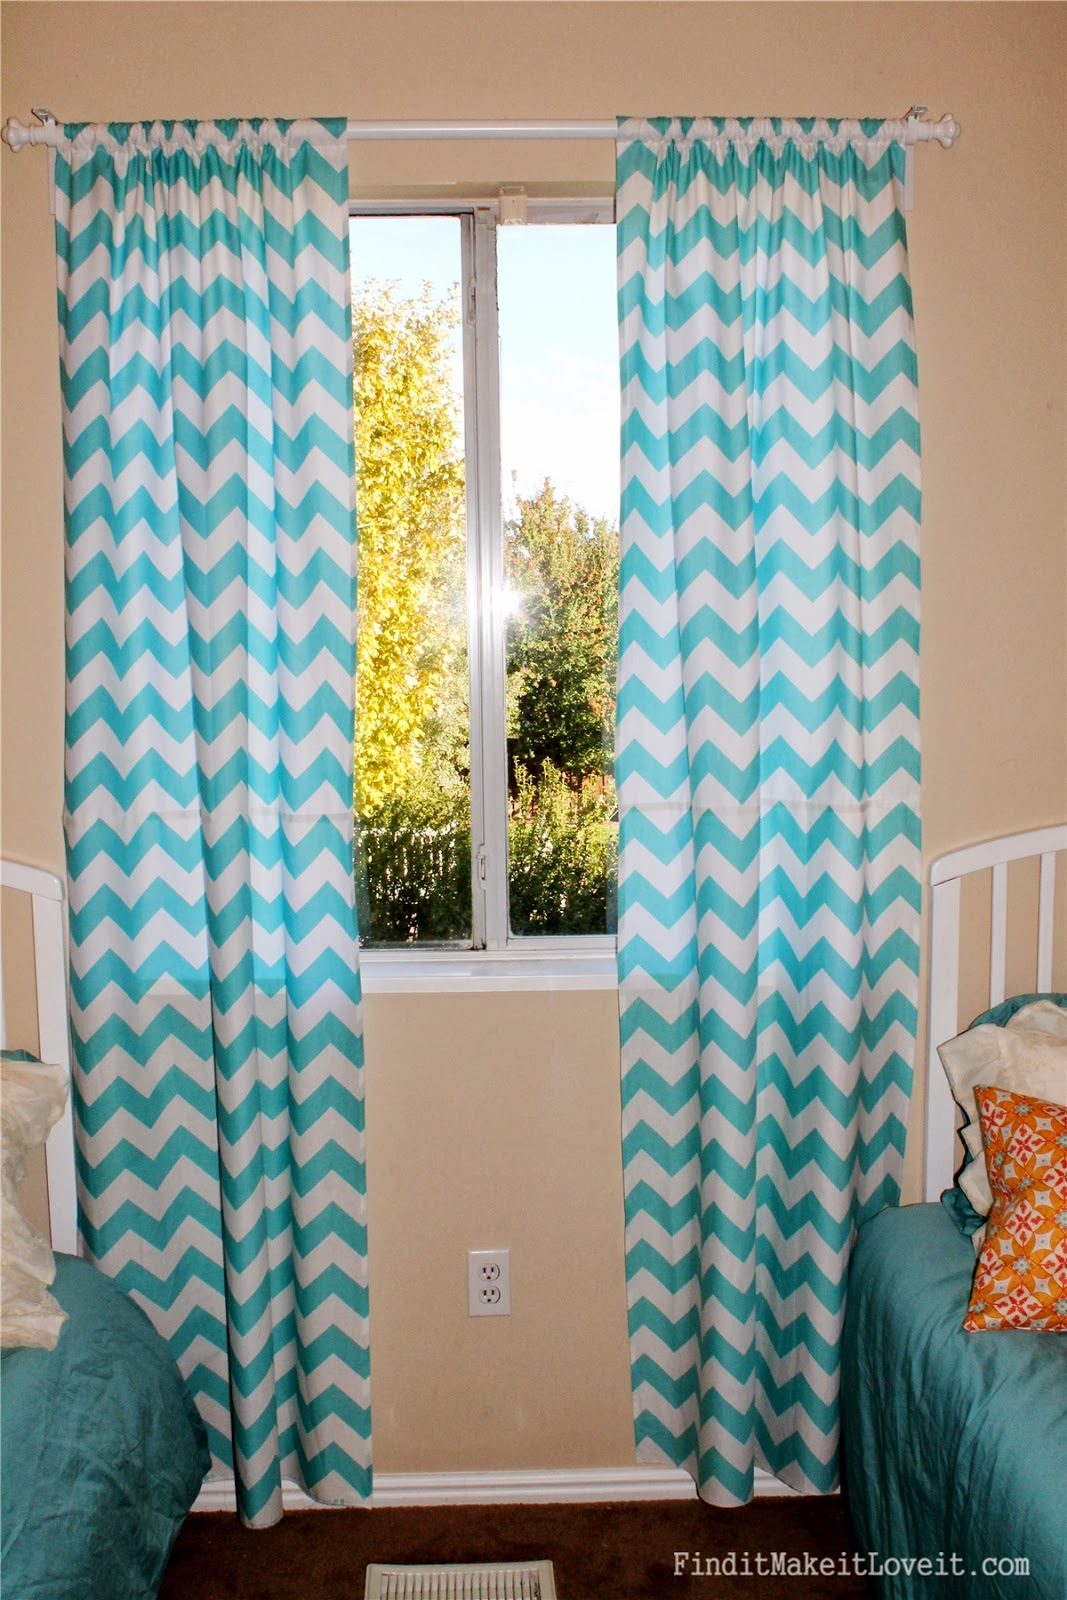 Easy Chevron Curtains  Find It, Make It, Love It. The Living Room Theatre. Fabric Chairs For Dining Room. How Much Does A Living Room Set Cost. Living Room Water Feature. Brown Rugs For Living Room. Cottage Living Room Furniture. Can Lights In Living Room. Free Live Sex Rooms